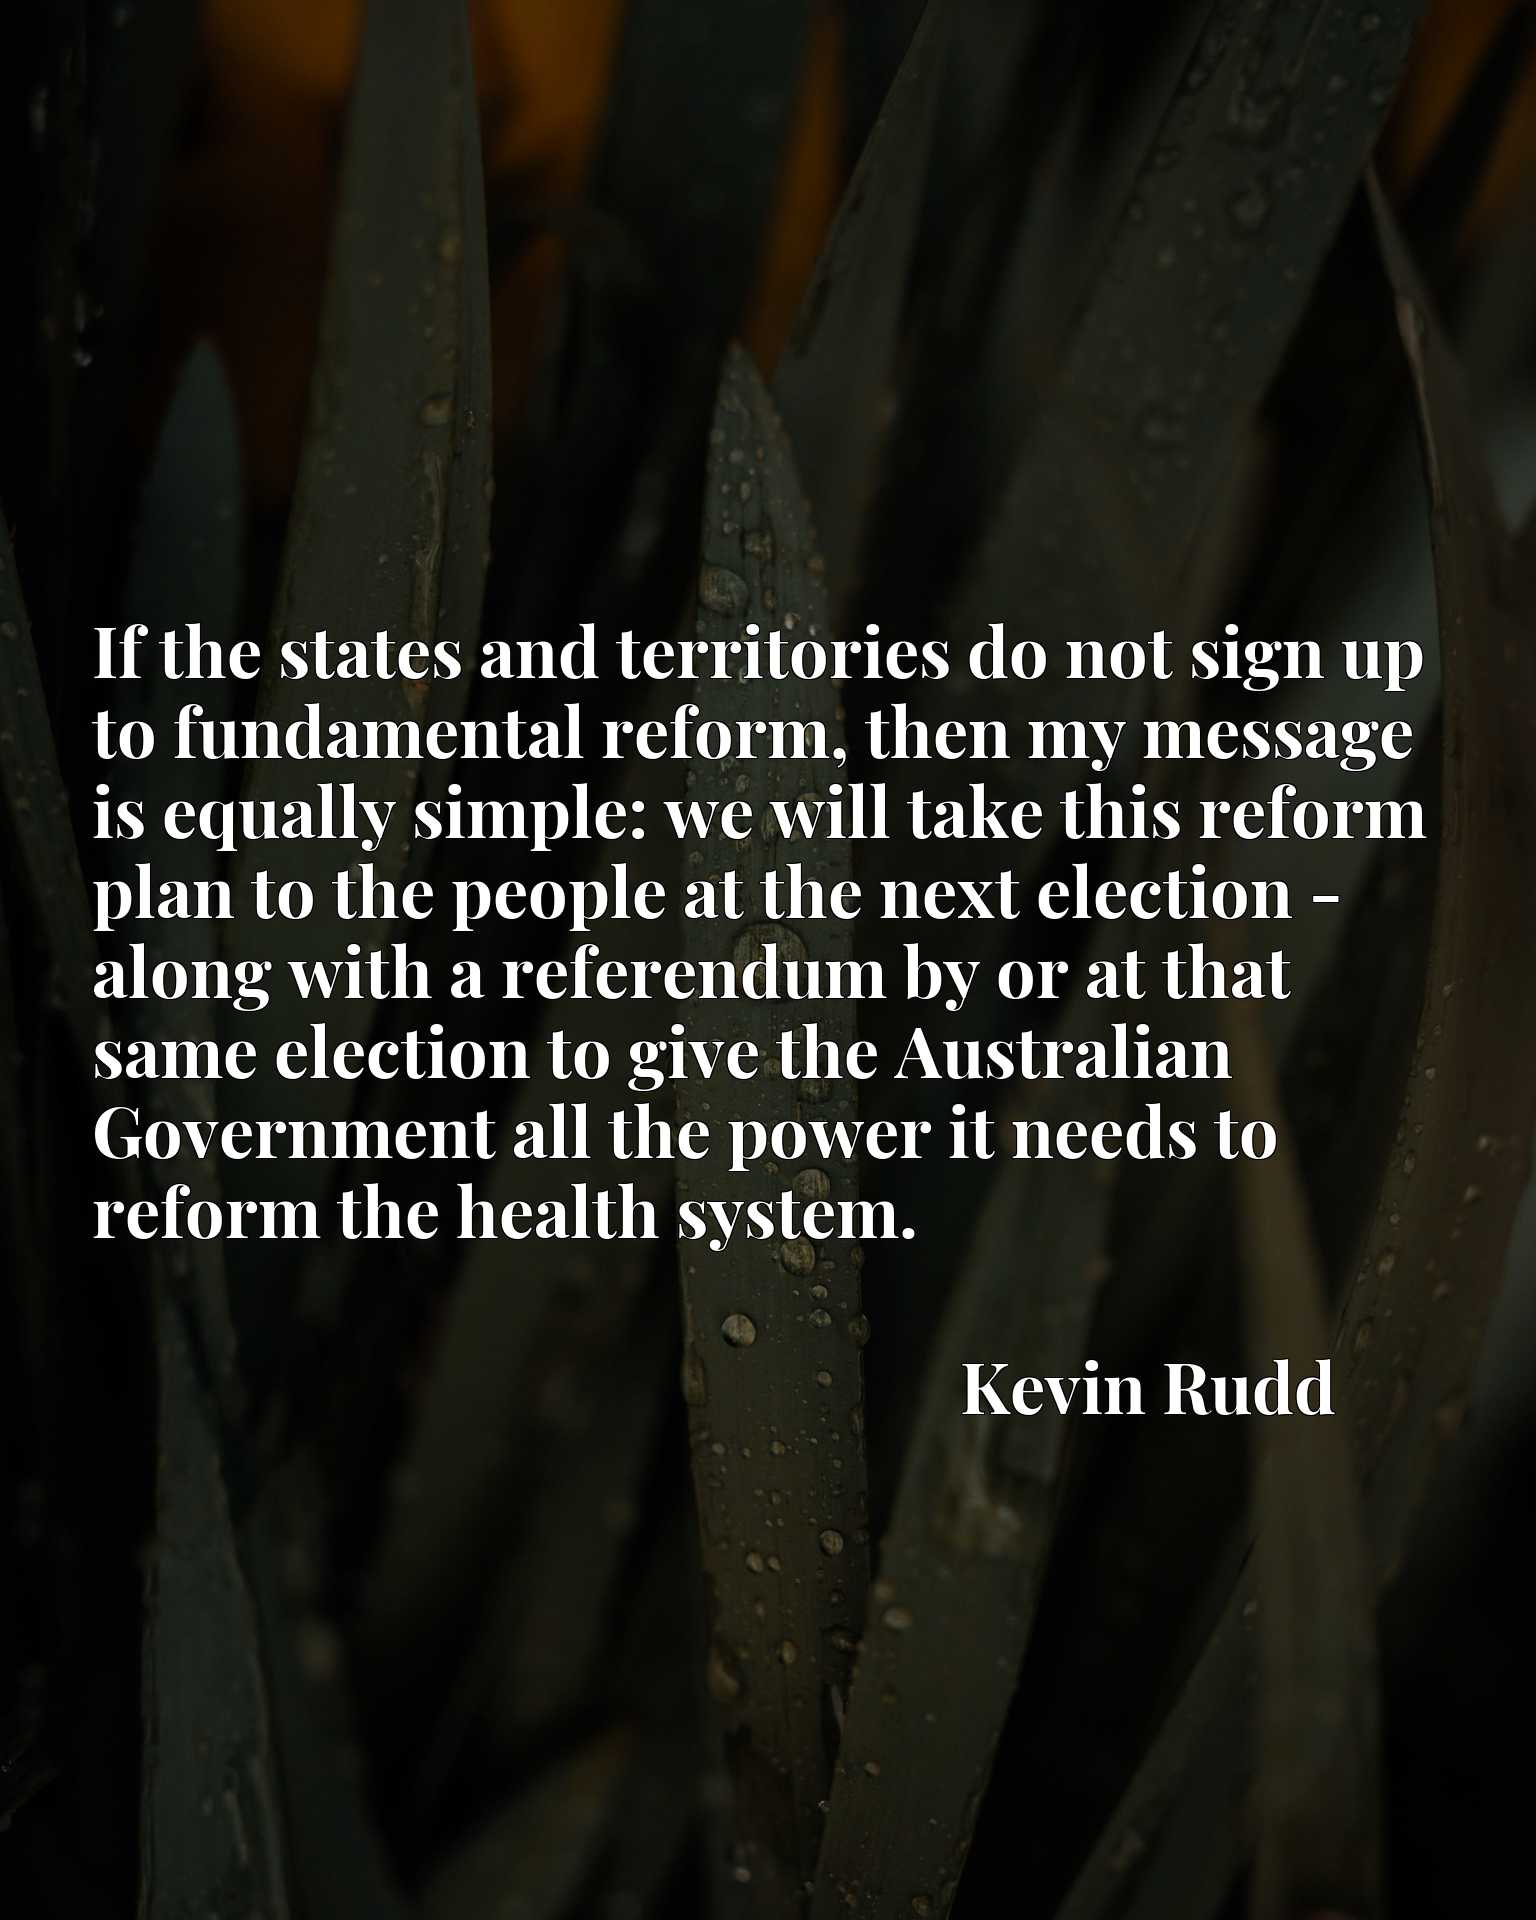 If the states and territories do not sign up to fundamental reform, then my message is equally simple: we will take this reform plan to the people at the next election - along with a referendum by or at that same election to give the Australian Government all the power it needs to reform the health system.